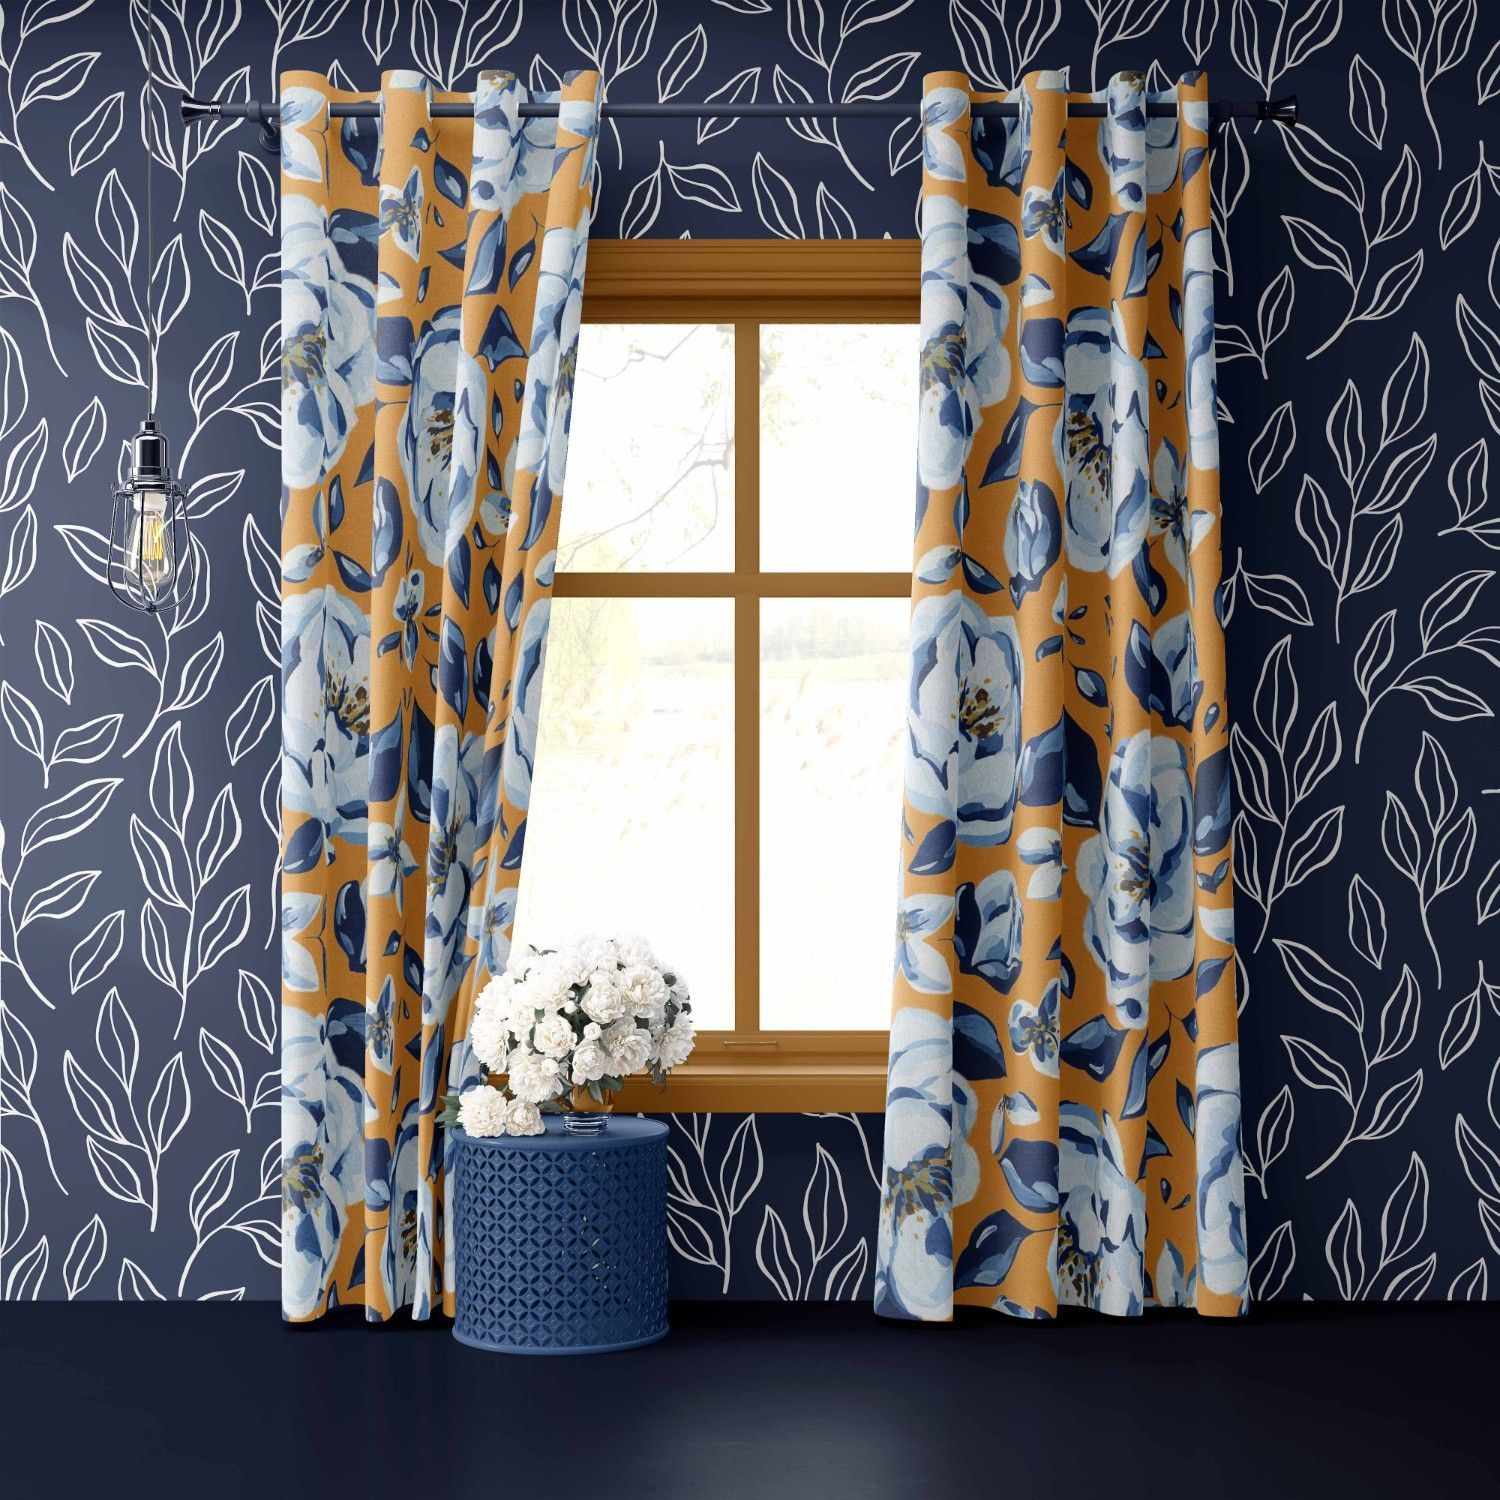 provence concept curtain wallpaper